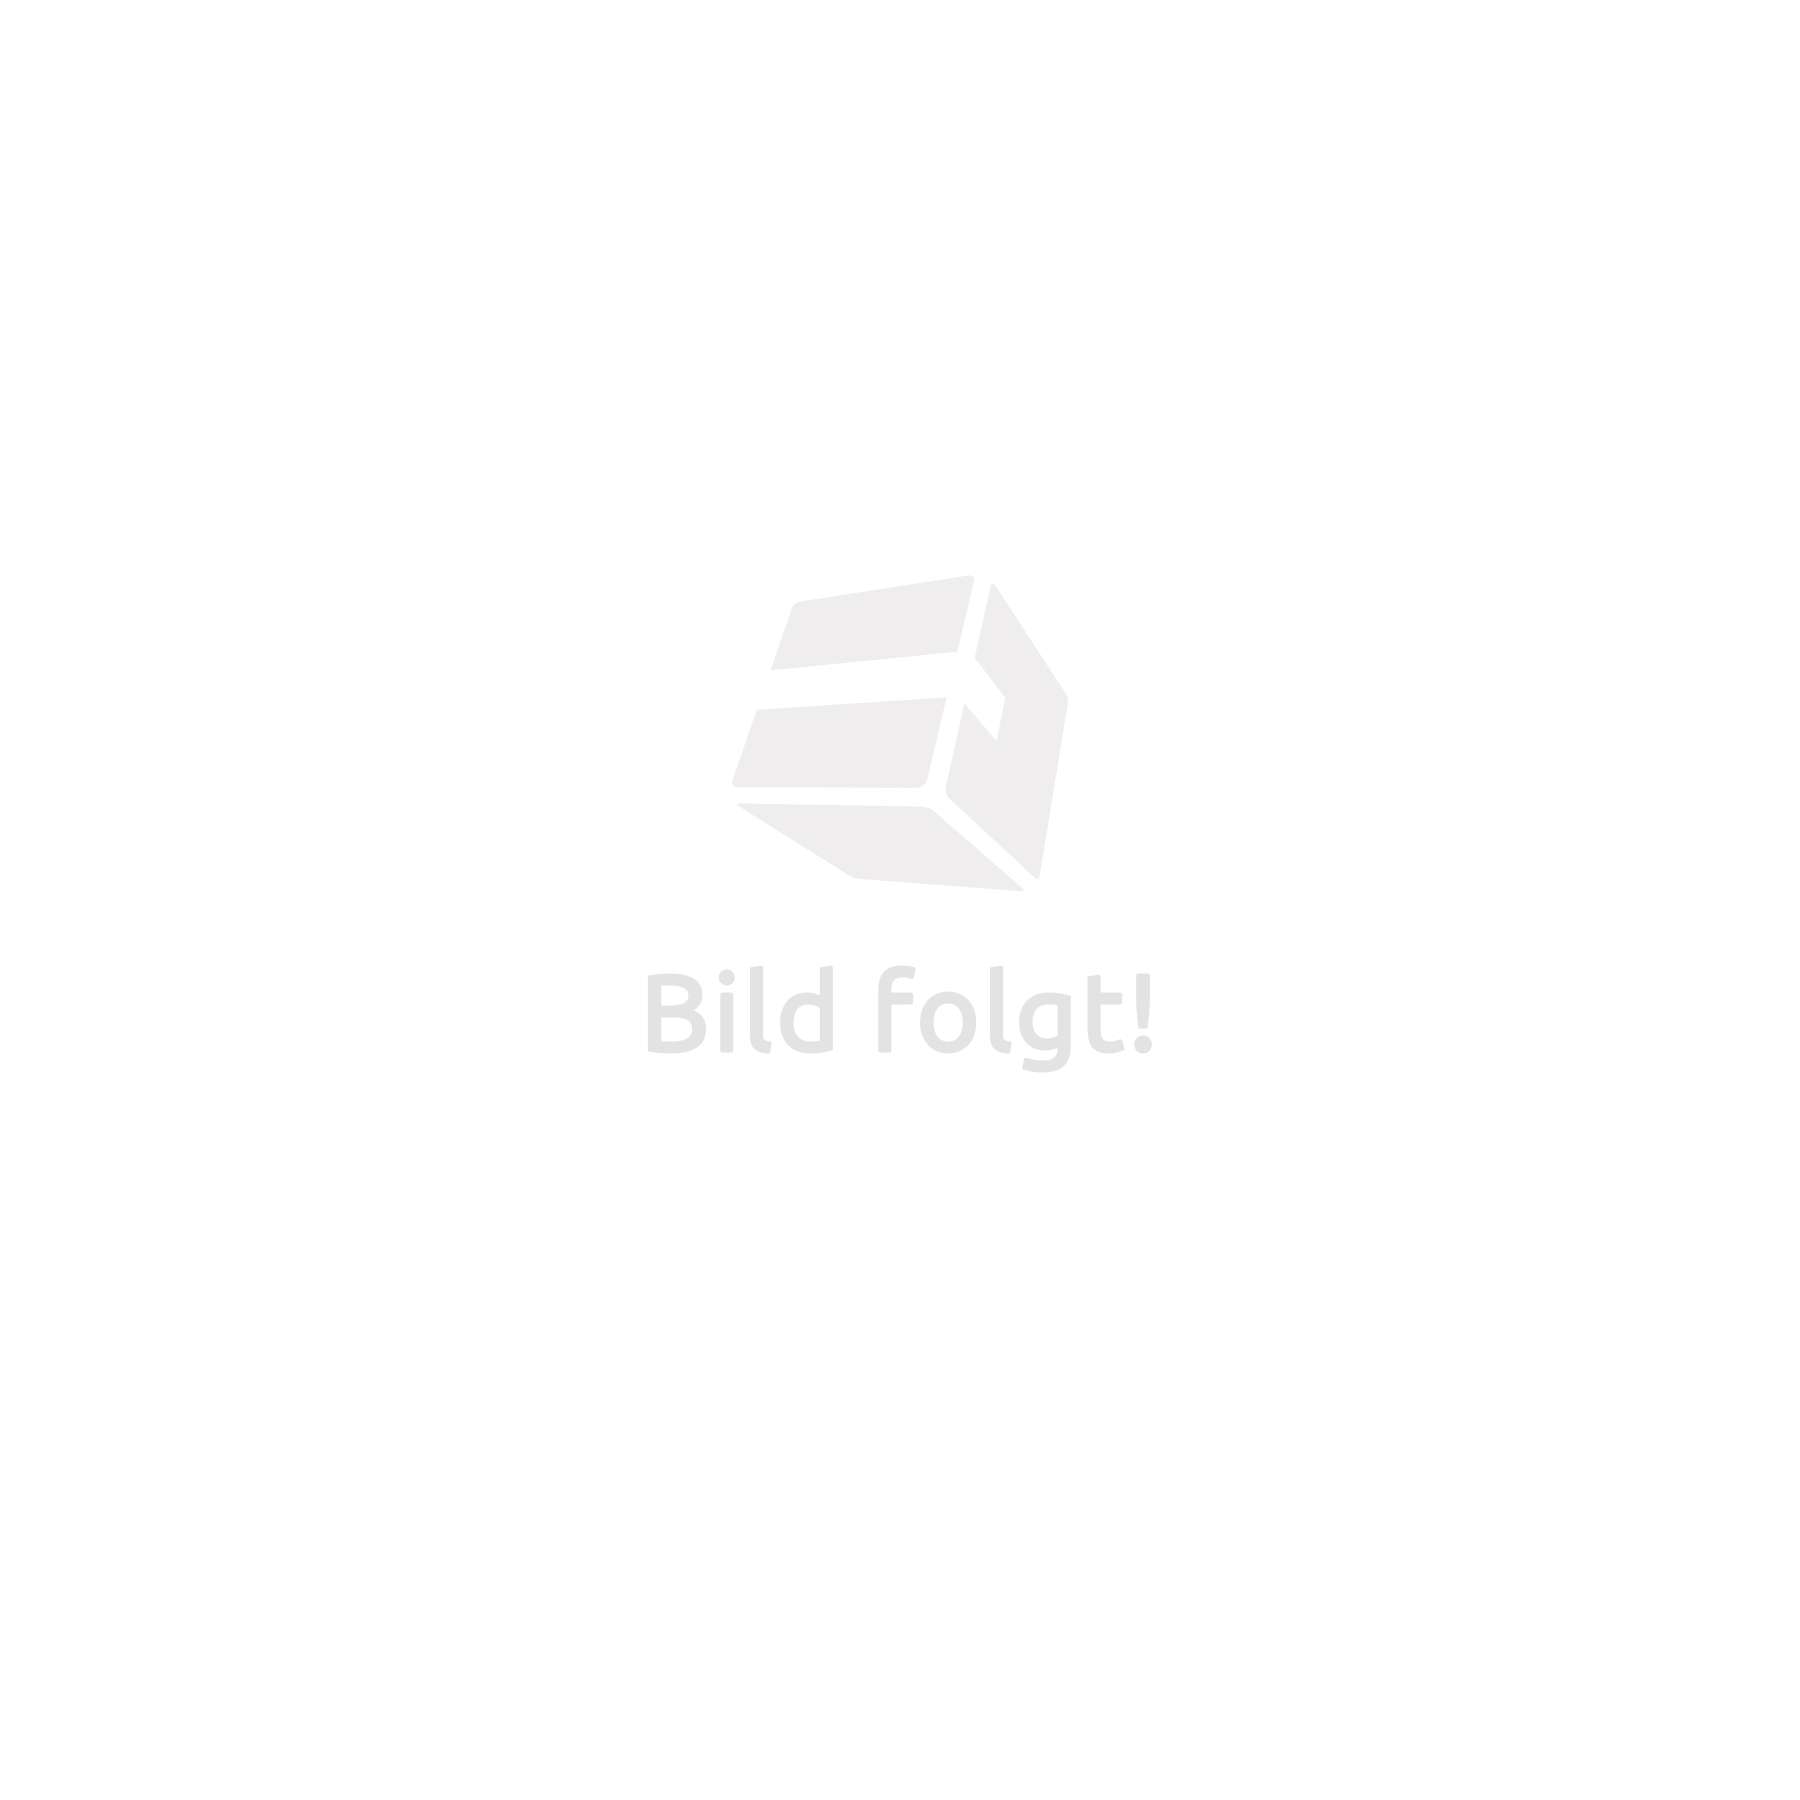 2er set alu klappstuhl gartenstuhl aluminium campingstuhl hochlehner silber ebay. Black Bedroom Furniture Sets. Home Design Ideas